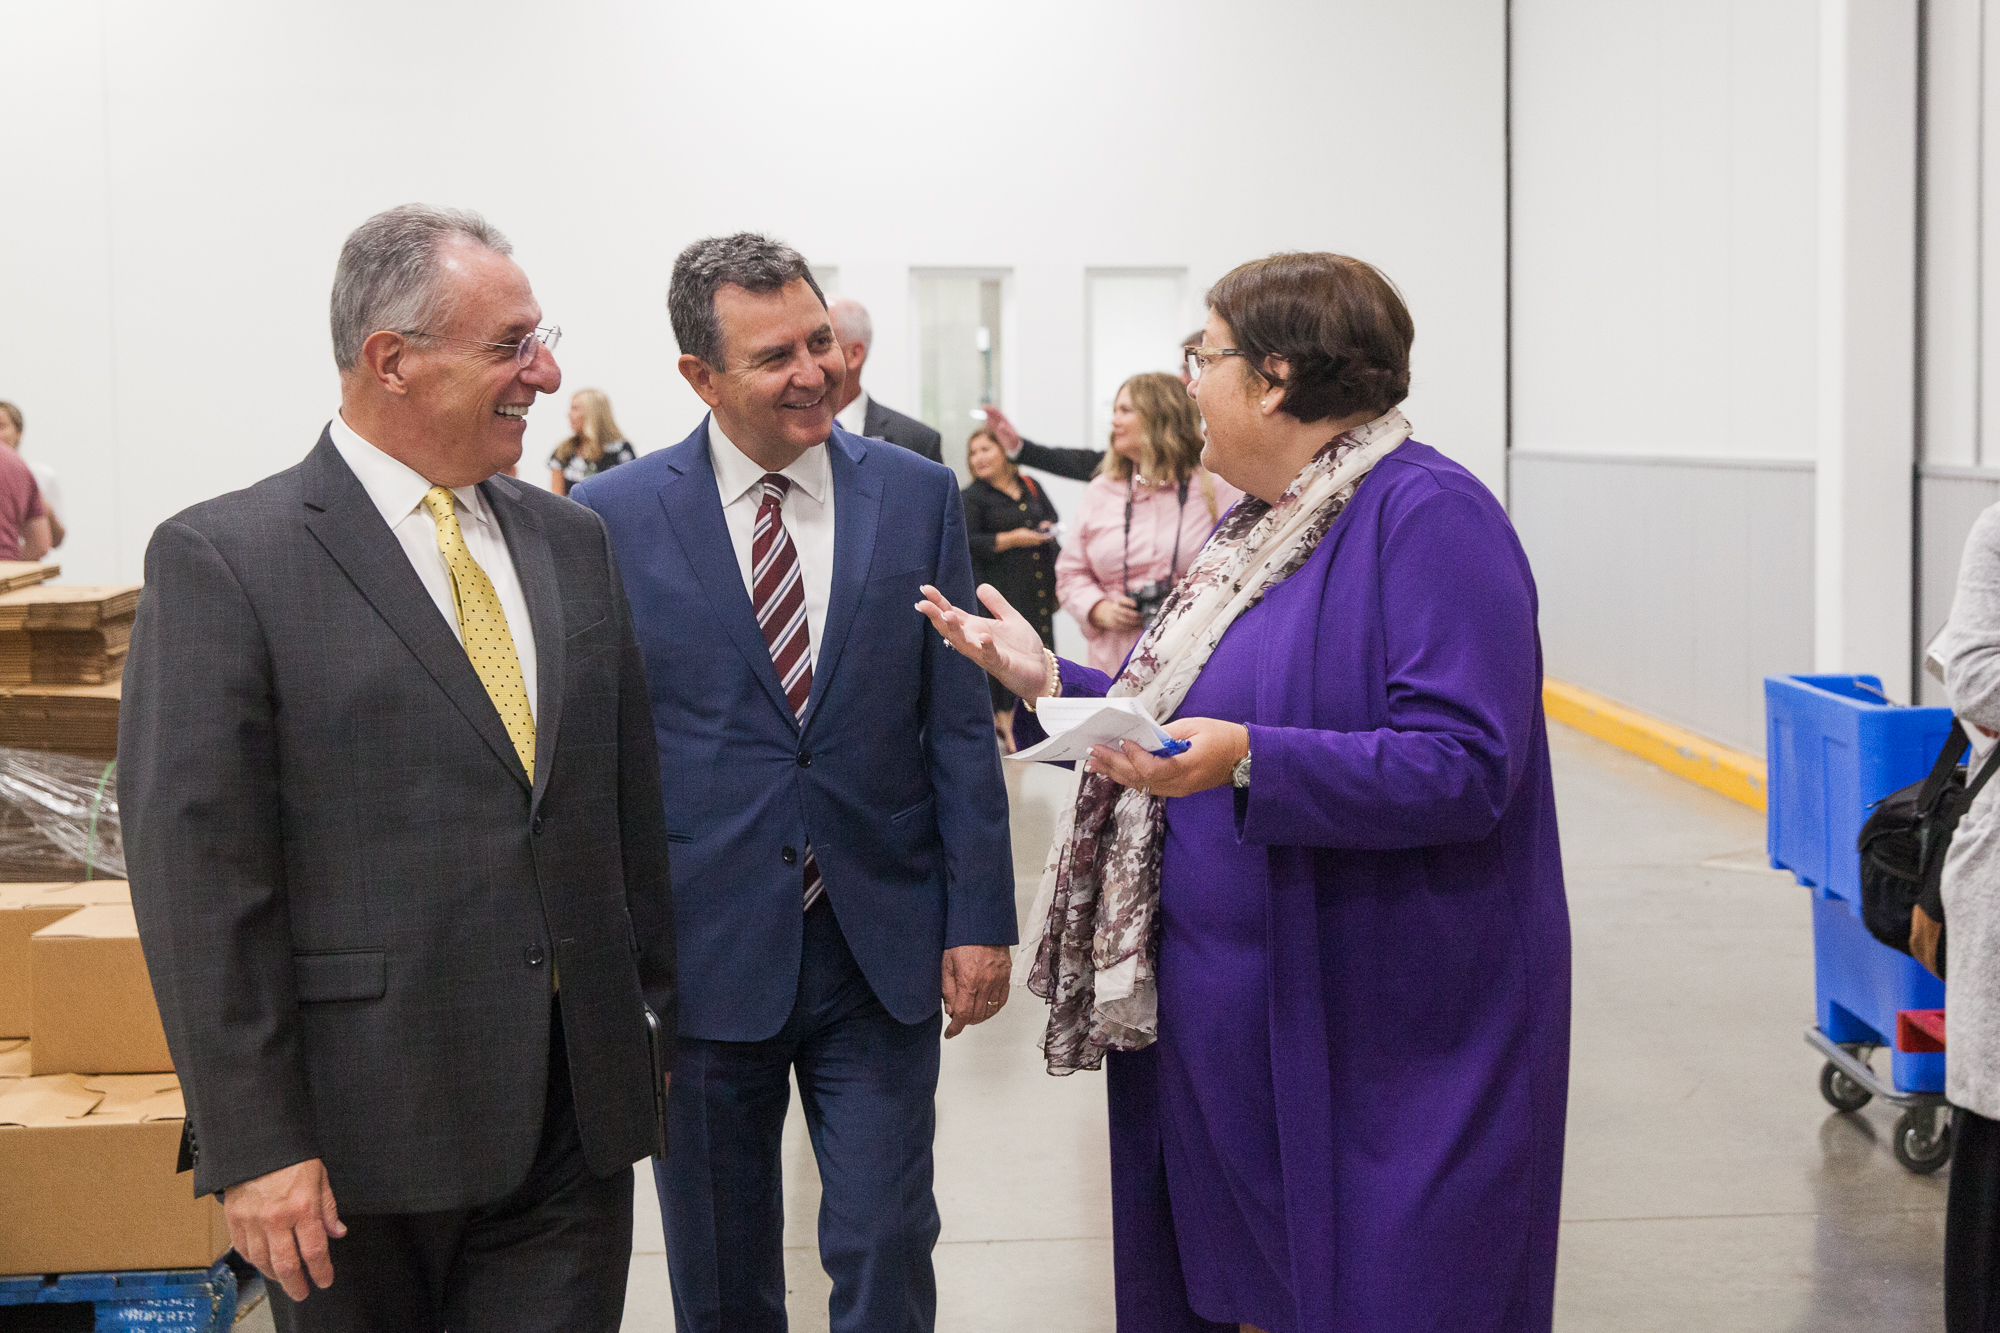 Elder Ulisses Soares, left, and Elder Adrian Ochoa speak with Denise Blok, chief operating officer of the Central Texas Food Bank during a visit to their facilities on Oct. 18, 2019.